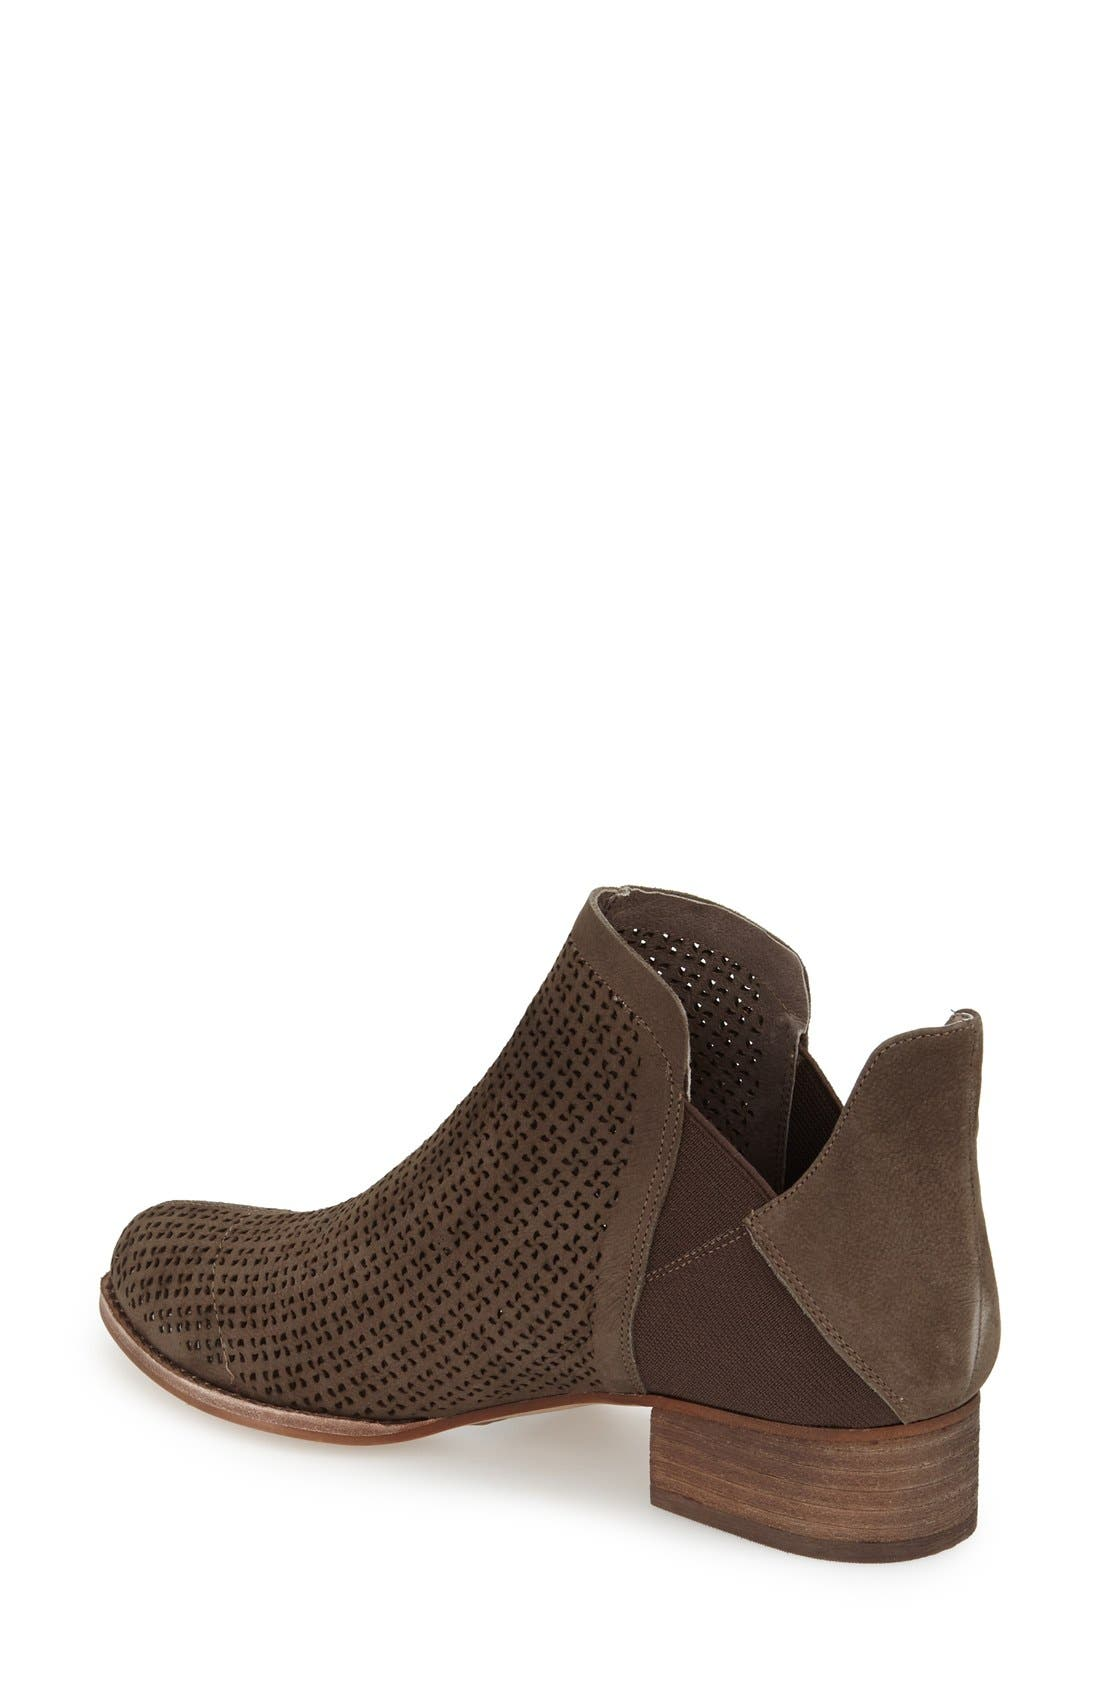 Alternate Image 2  - Vince Camuto Celena Perforated Bootie (Women)